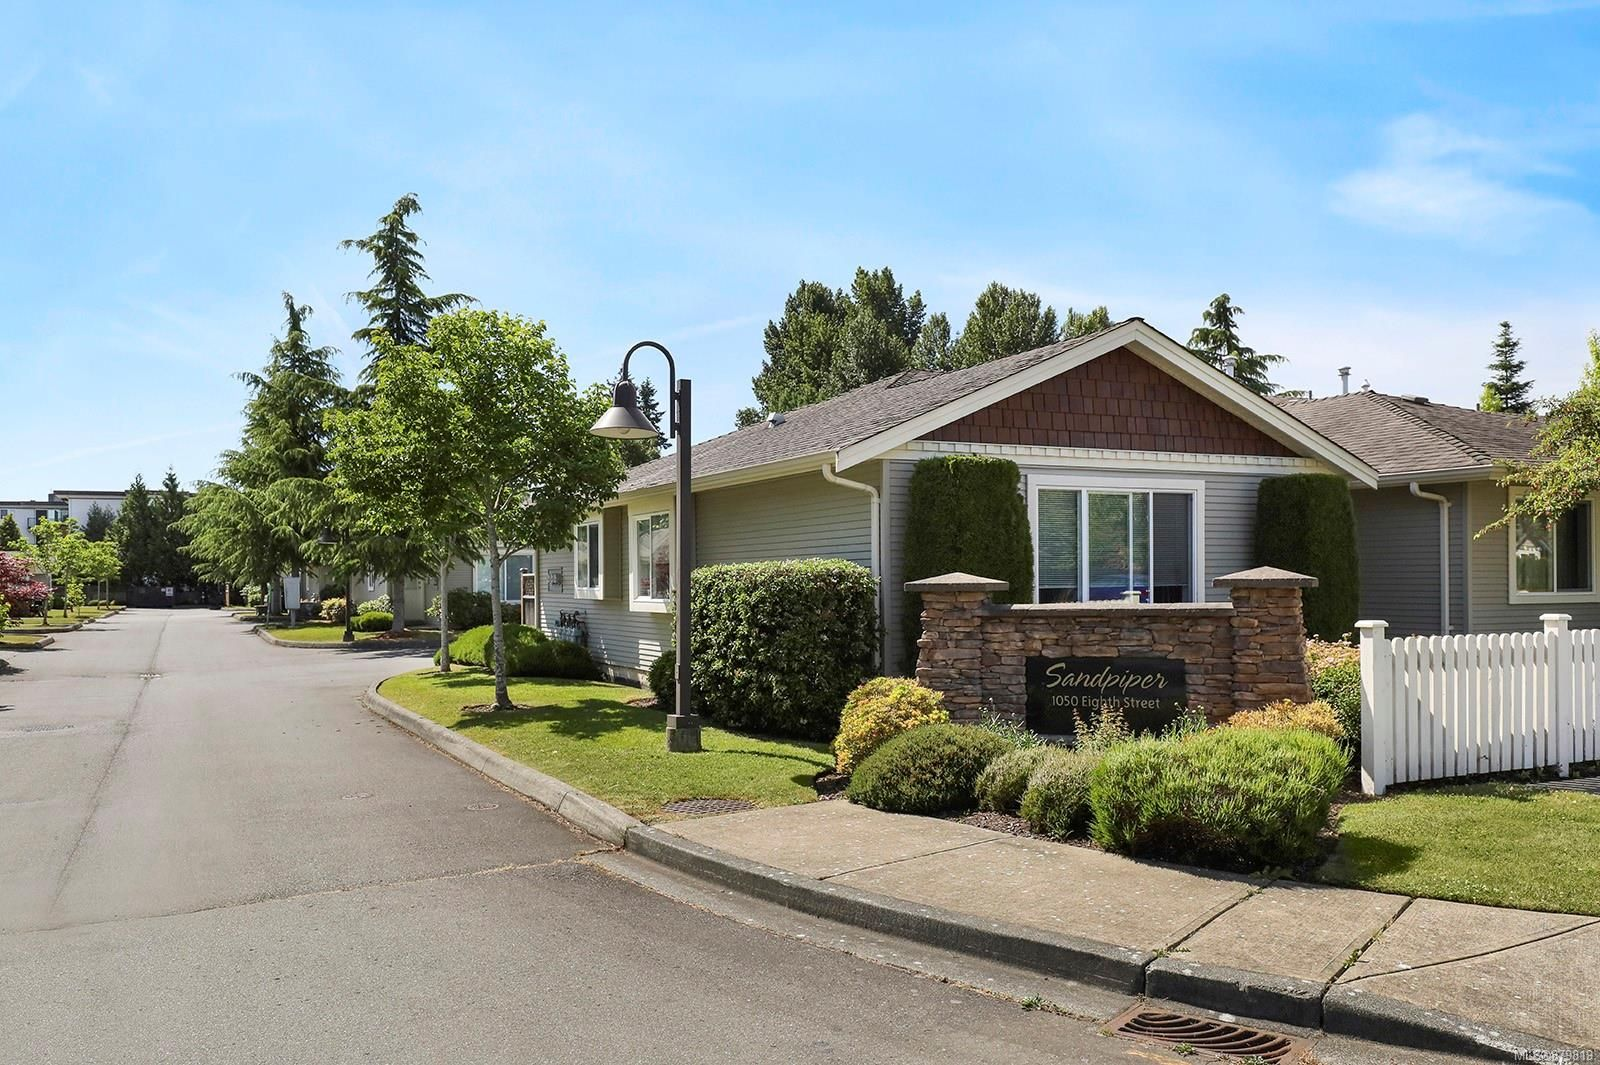 Main Photo: 8 1050 8th St in : CV Courtenay City Row/Townhouse for sale (Comox Valley)  : MLS®# 879819